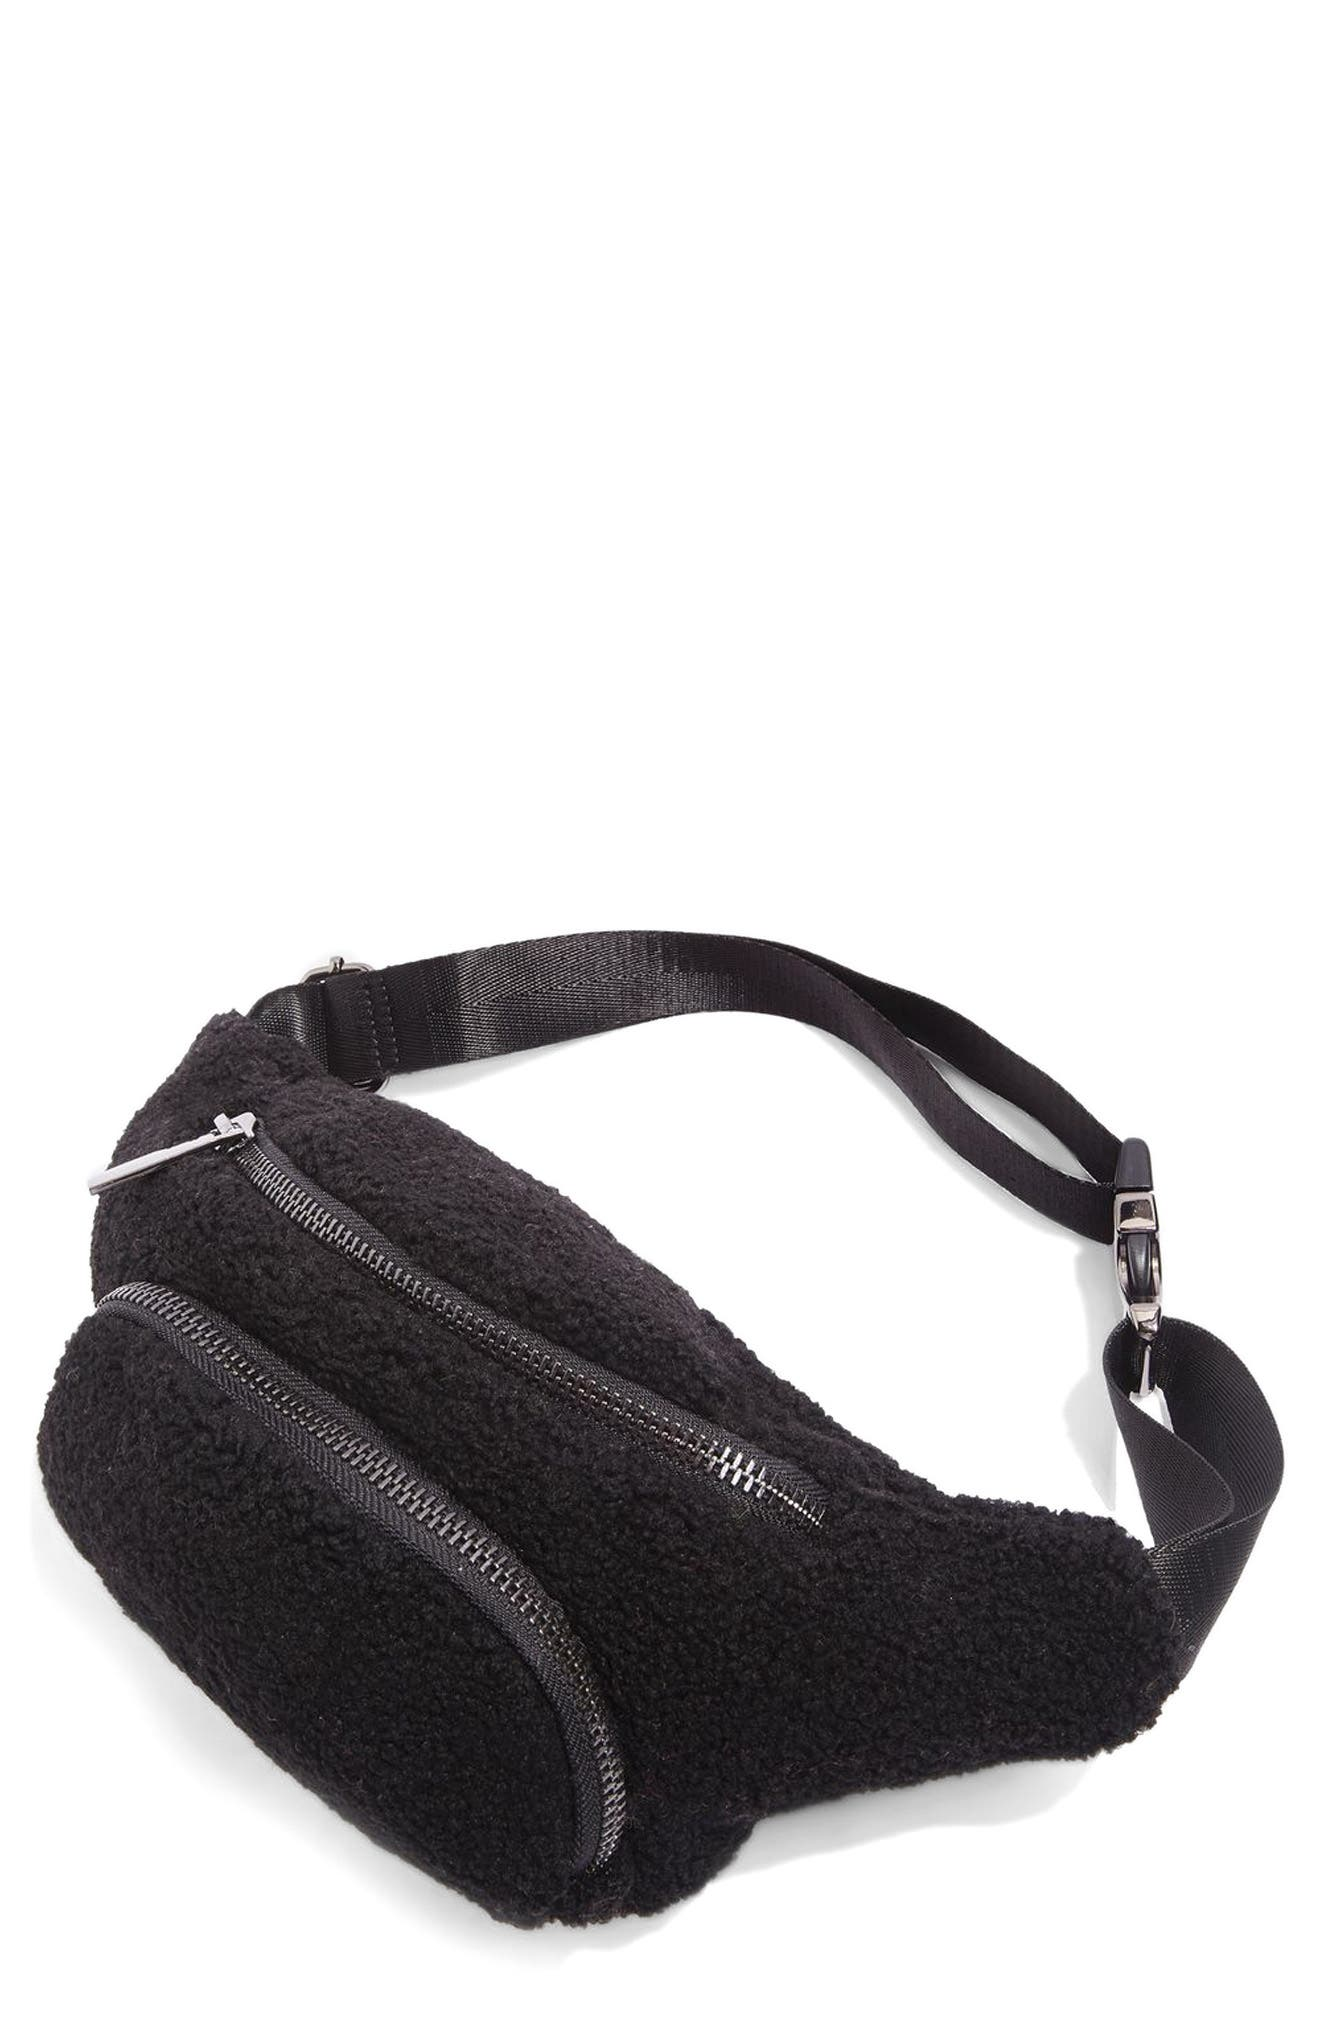 Benny Borg Belt Bag,                         Main,                         color, Black